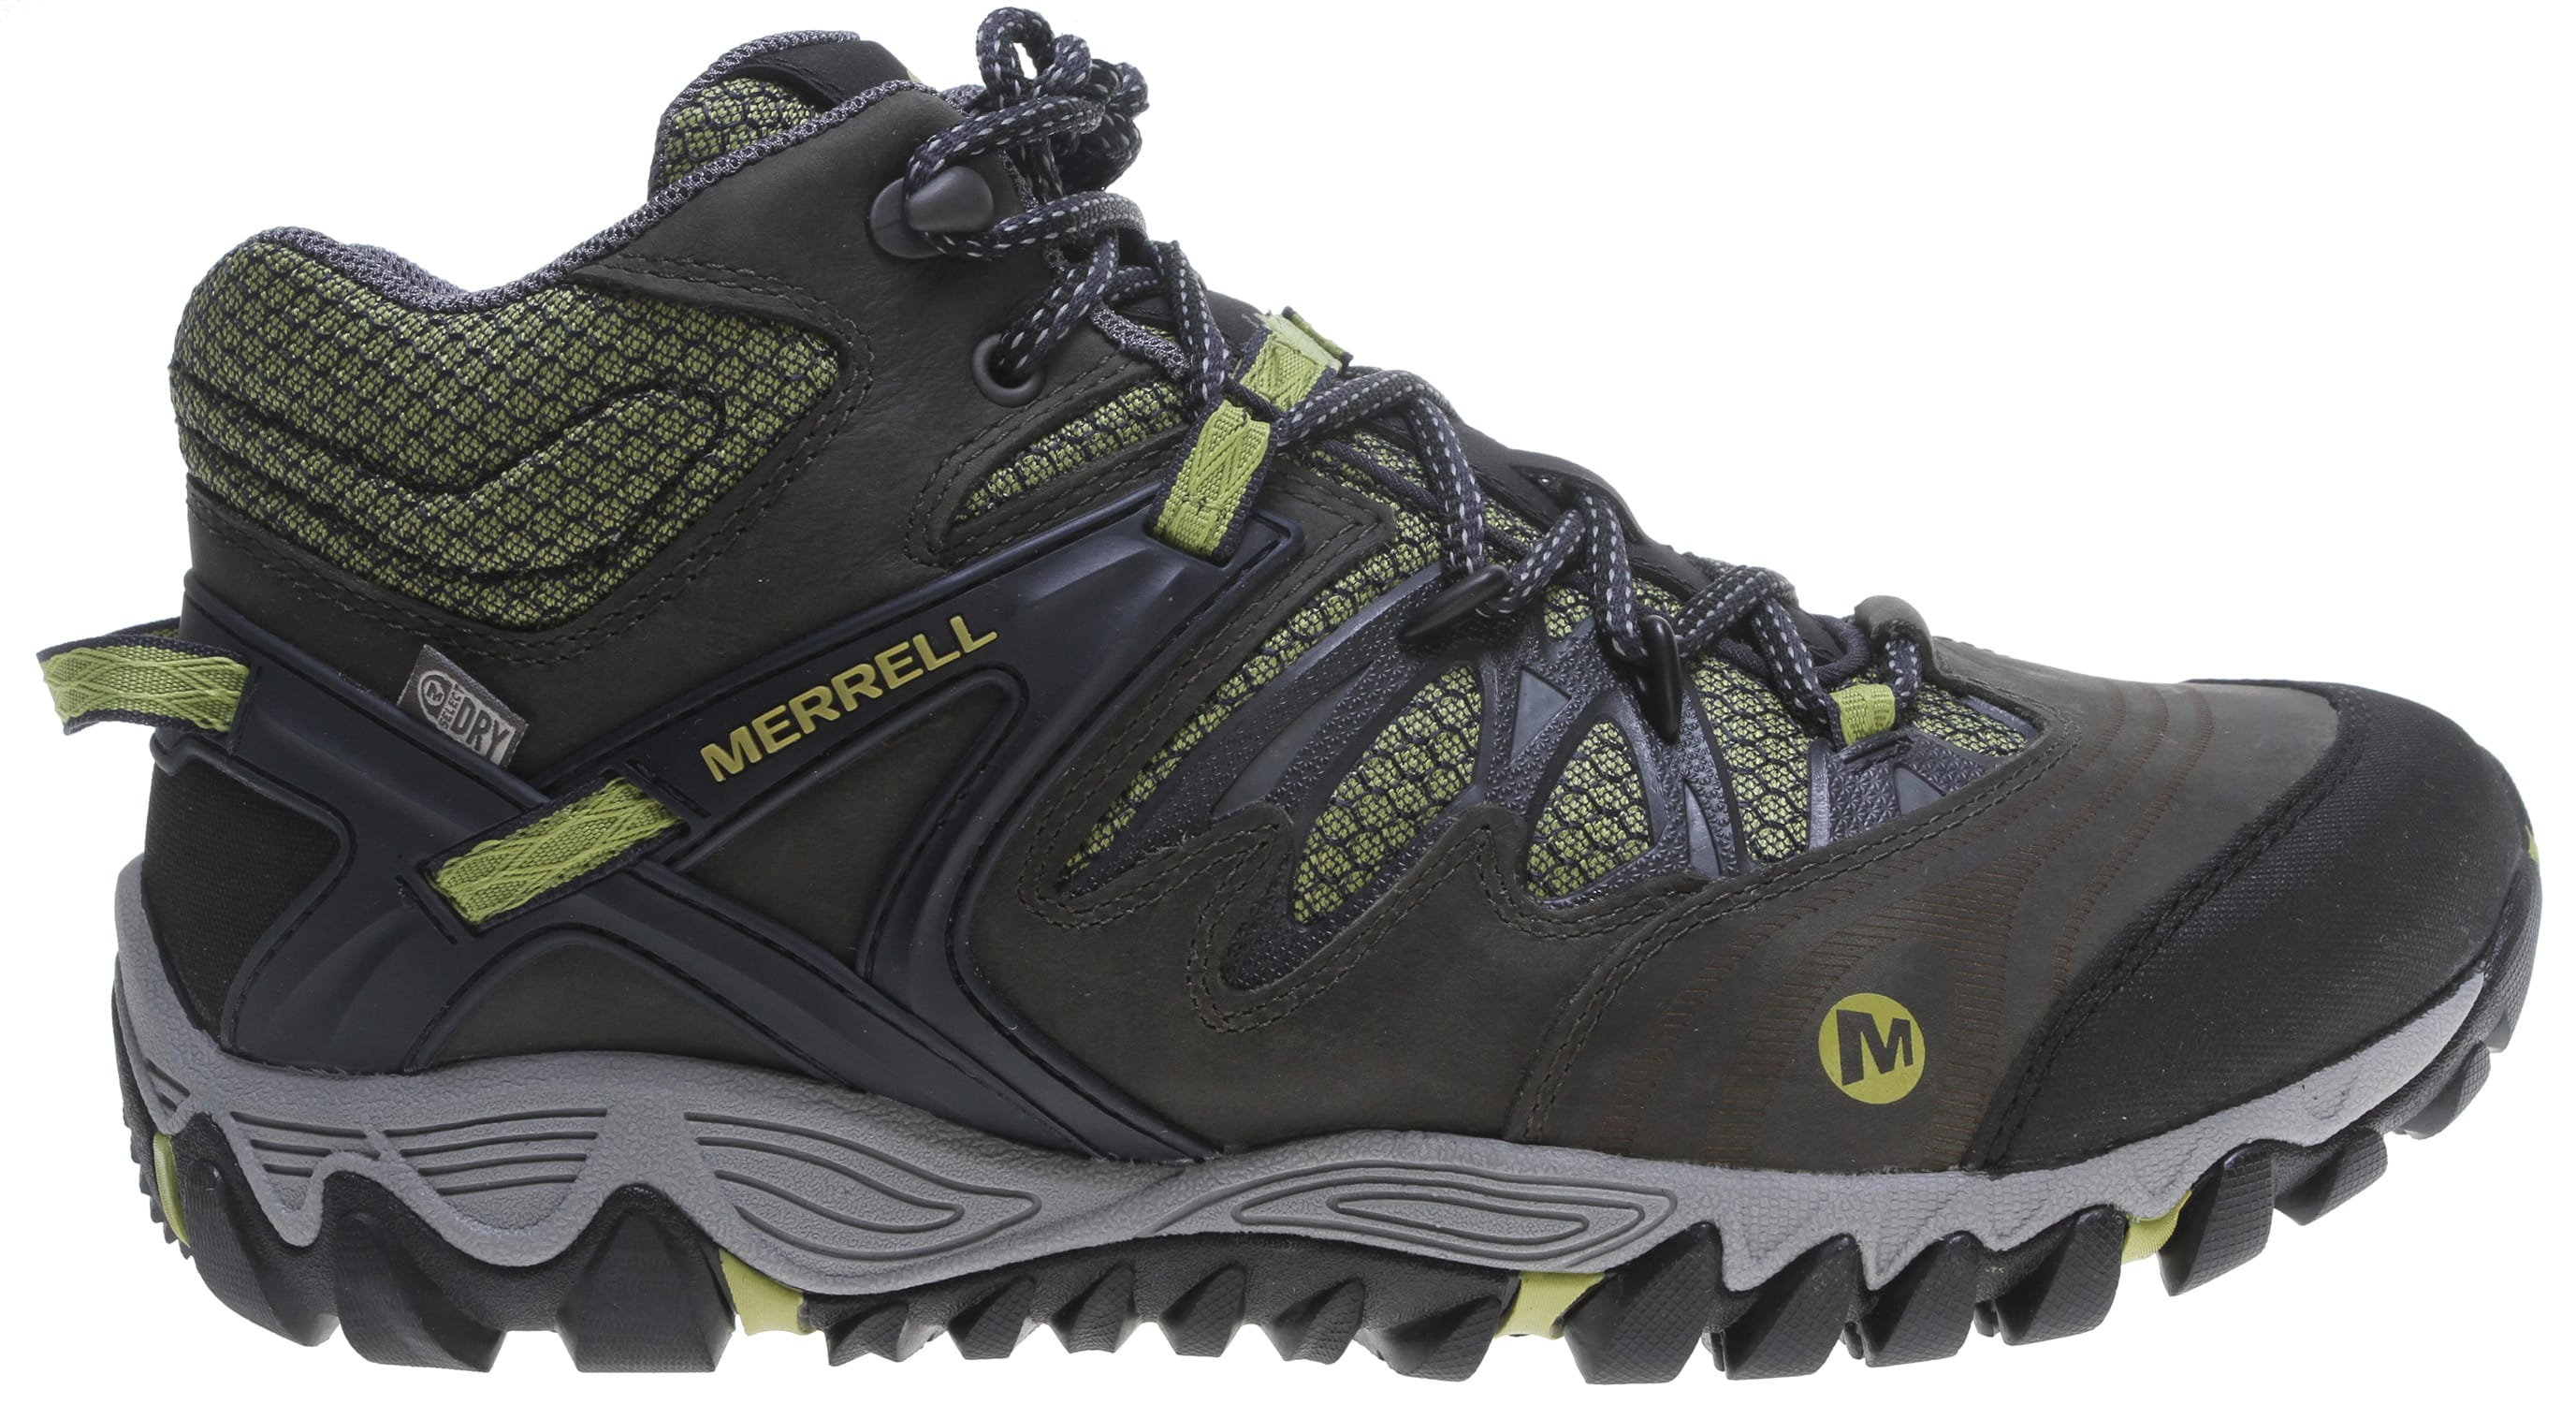 Merrell Allout Blaze Mid Waterproof Hiking Boots  thumbnail 1